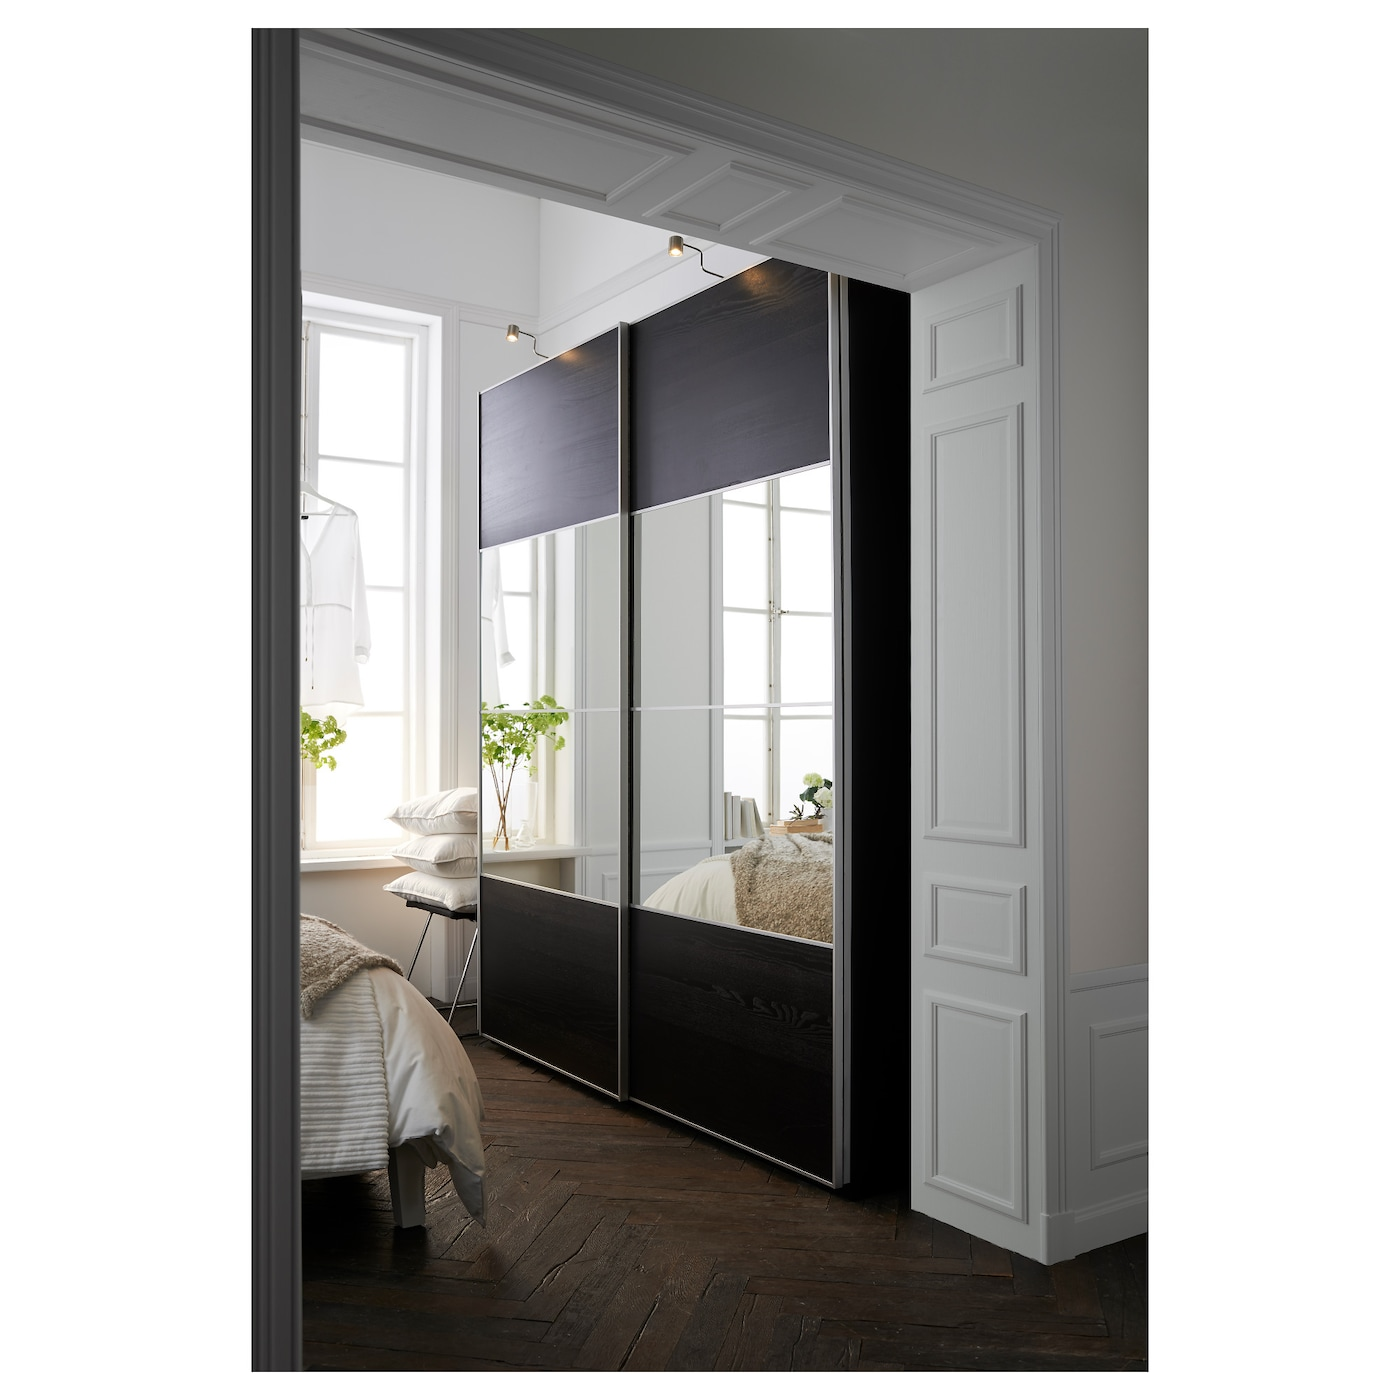 Pax wardrobe black brown auli ilseng 200x66x236 cm ikea for Modele armoire de chambre